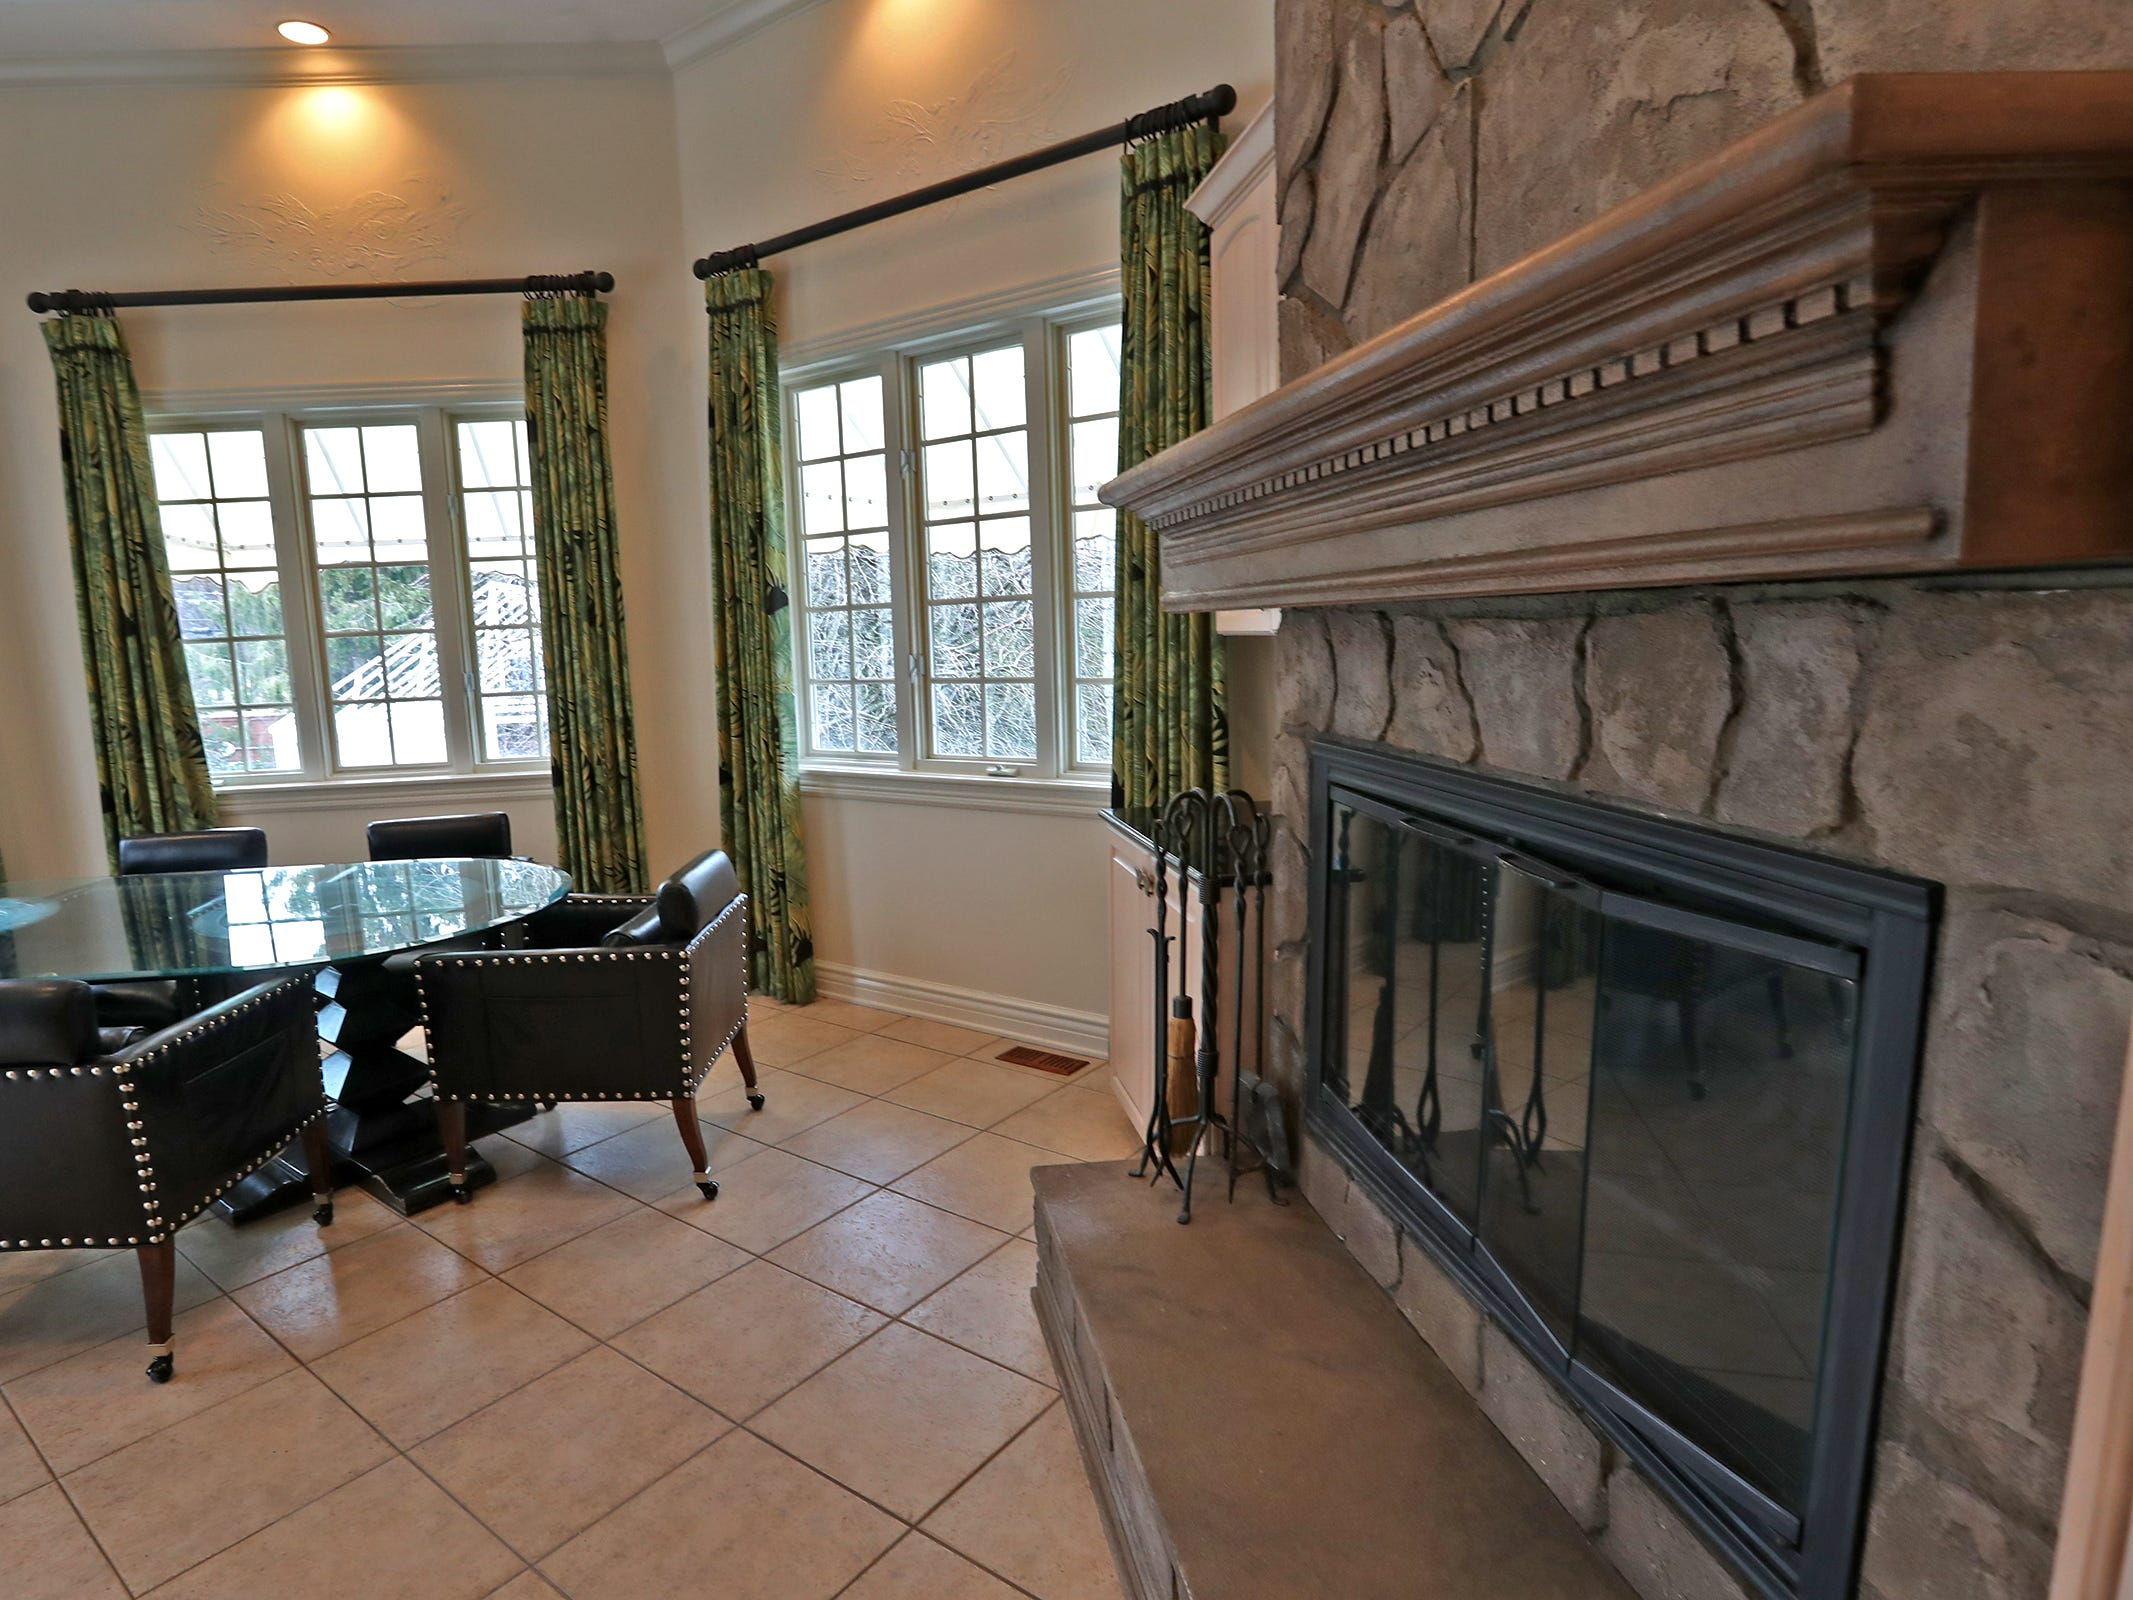 This is the eating area, with a fireplace, off the kitchen, in the home at 1270 Laurelwood Ct. in Carmel, Friday, Dec. 28, 2018.